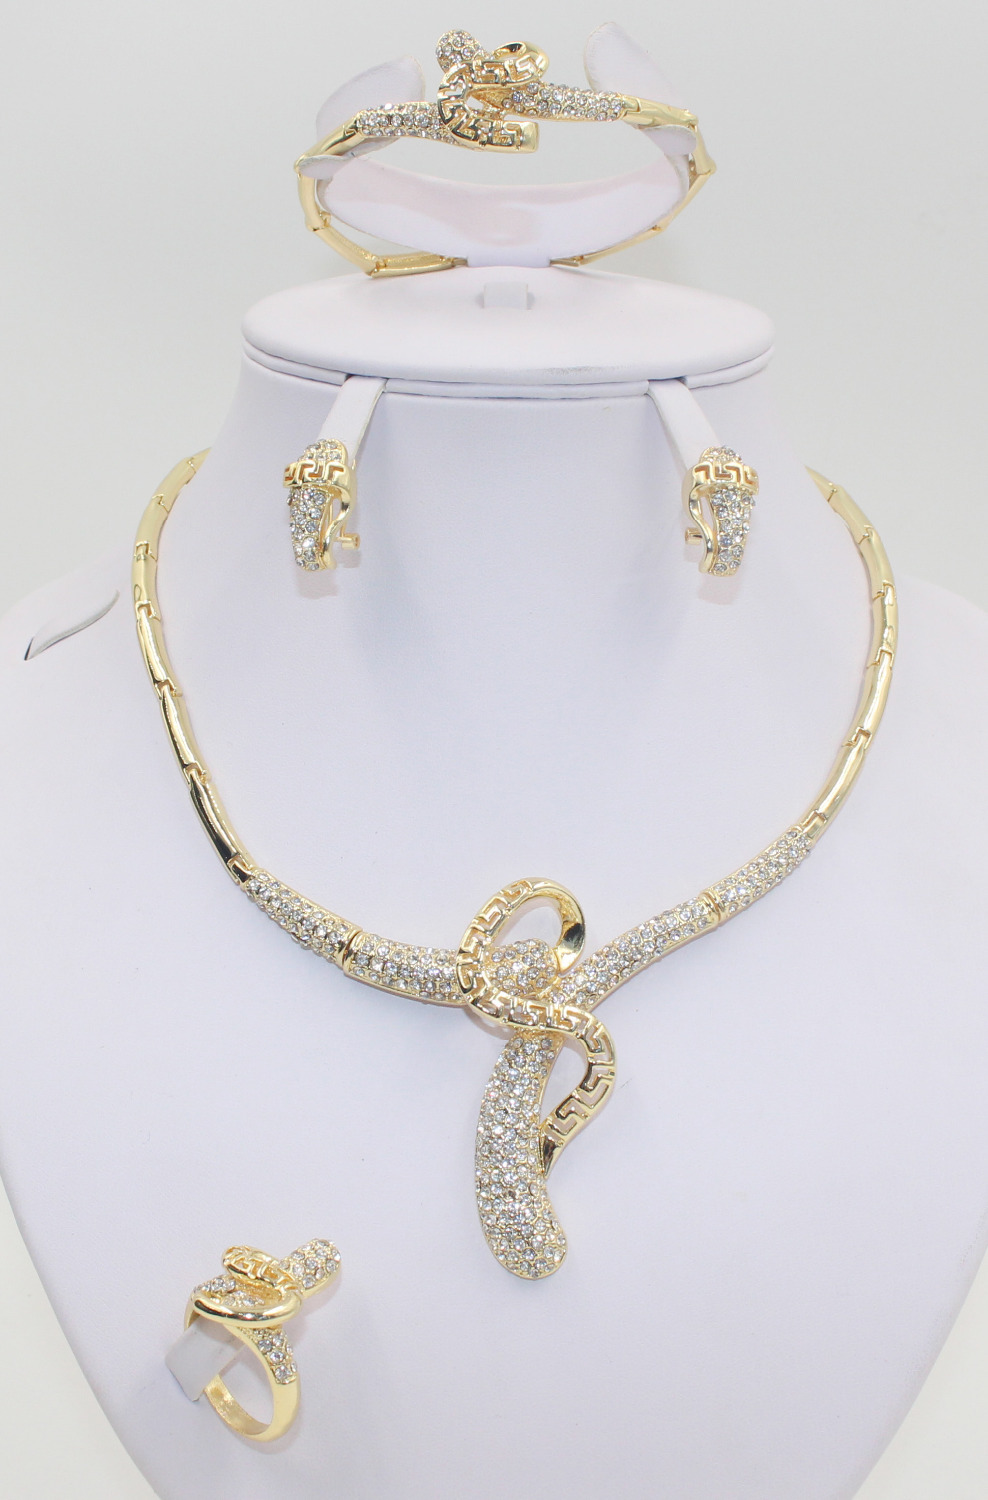 2015 new Dubai African 18k Gold Plated Mysterious Charming Necklace Fashion Romantic Wedding Bridal Costume Jewelry Sets(China (Mainland))